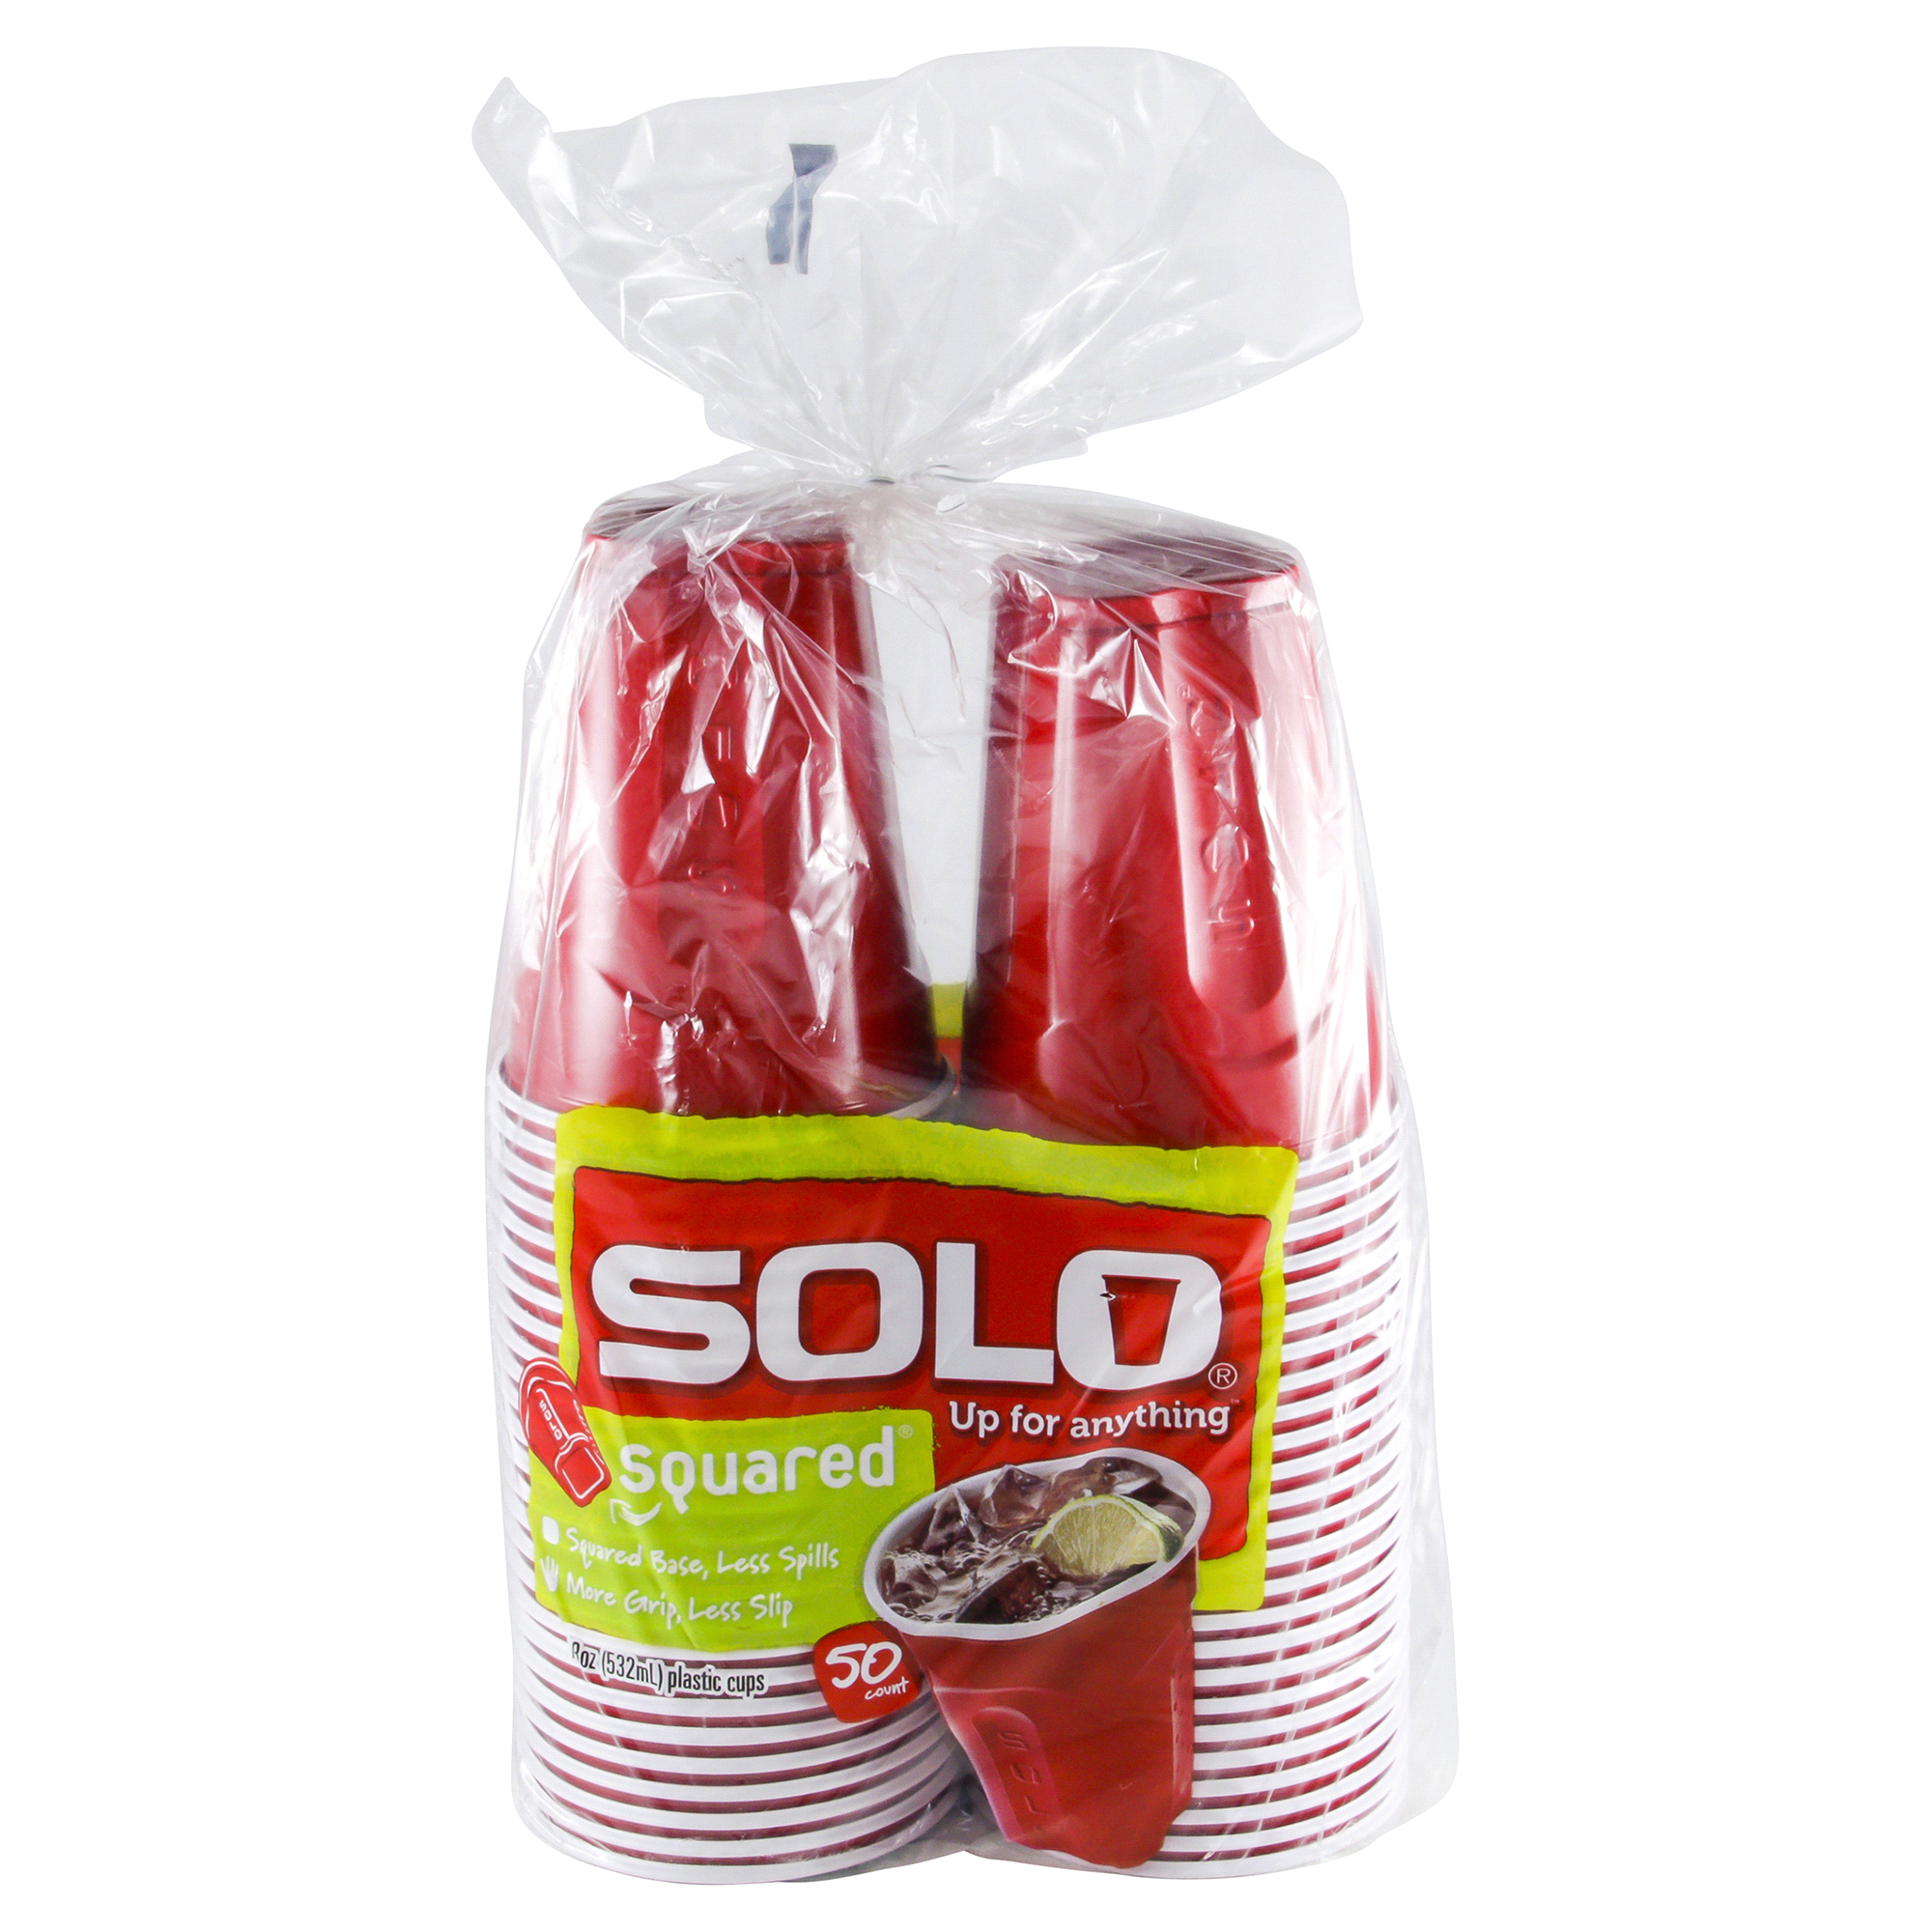 sc 1 st  Meijer & SOLO SQUARED 18 ounce Plastic Cup 50 Count | Meijer.com